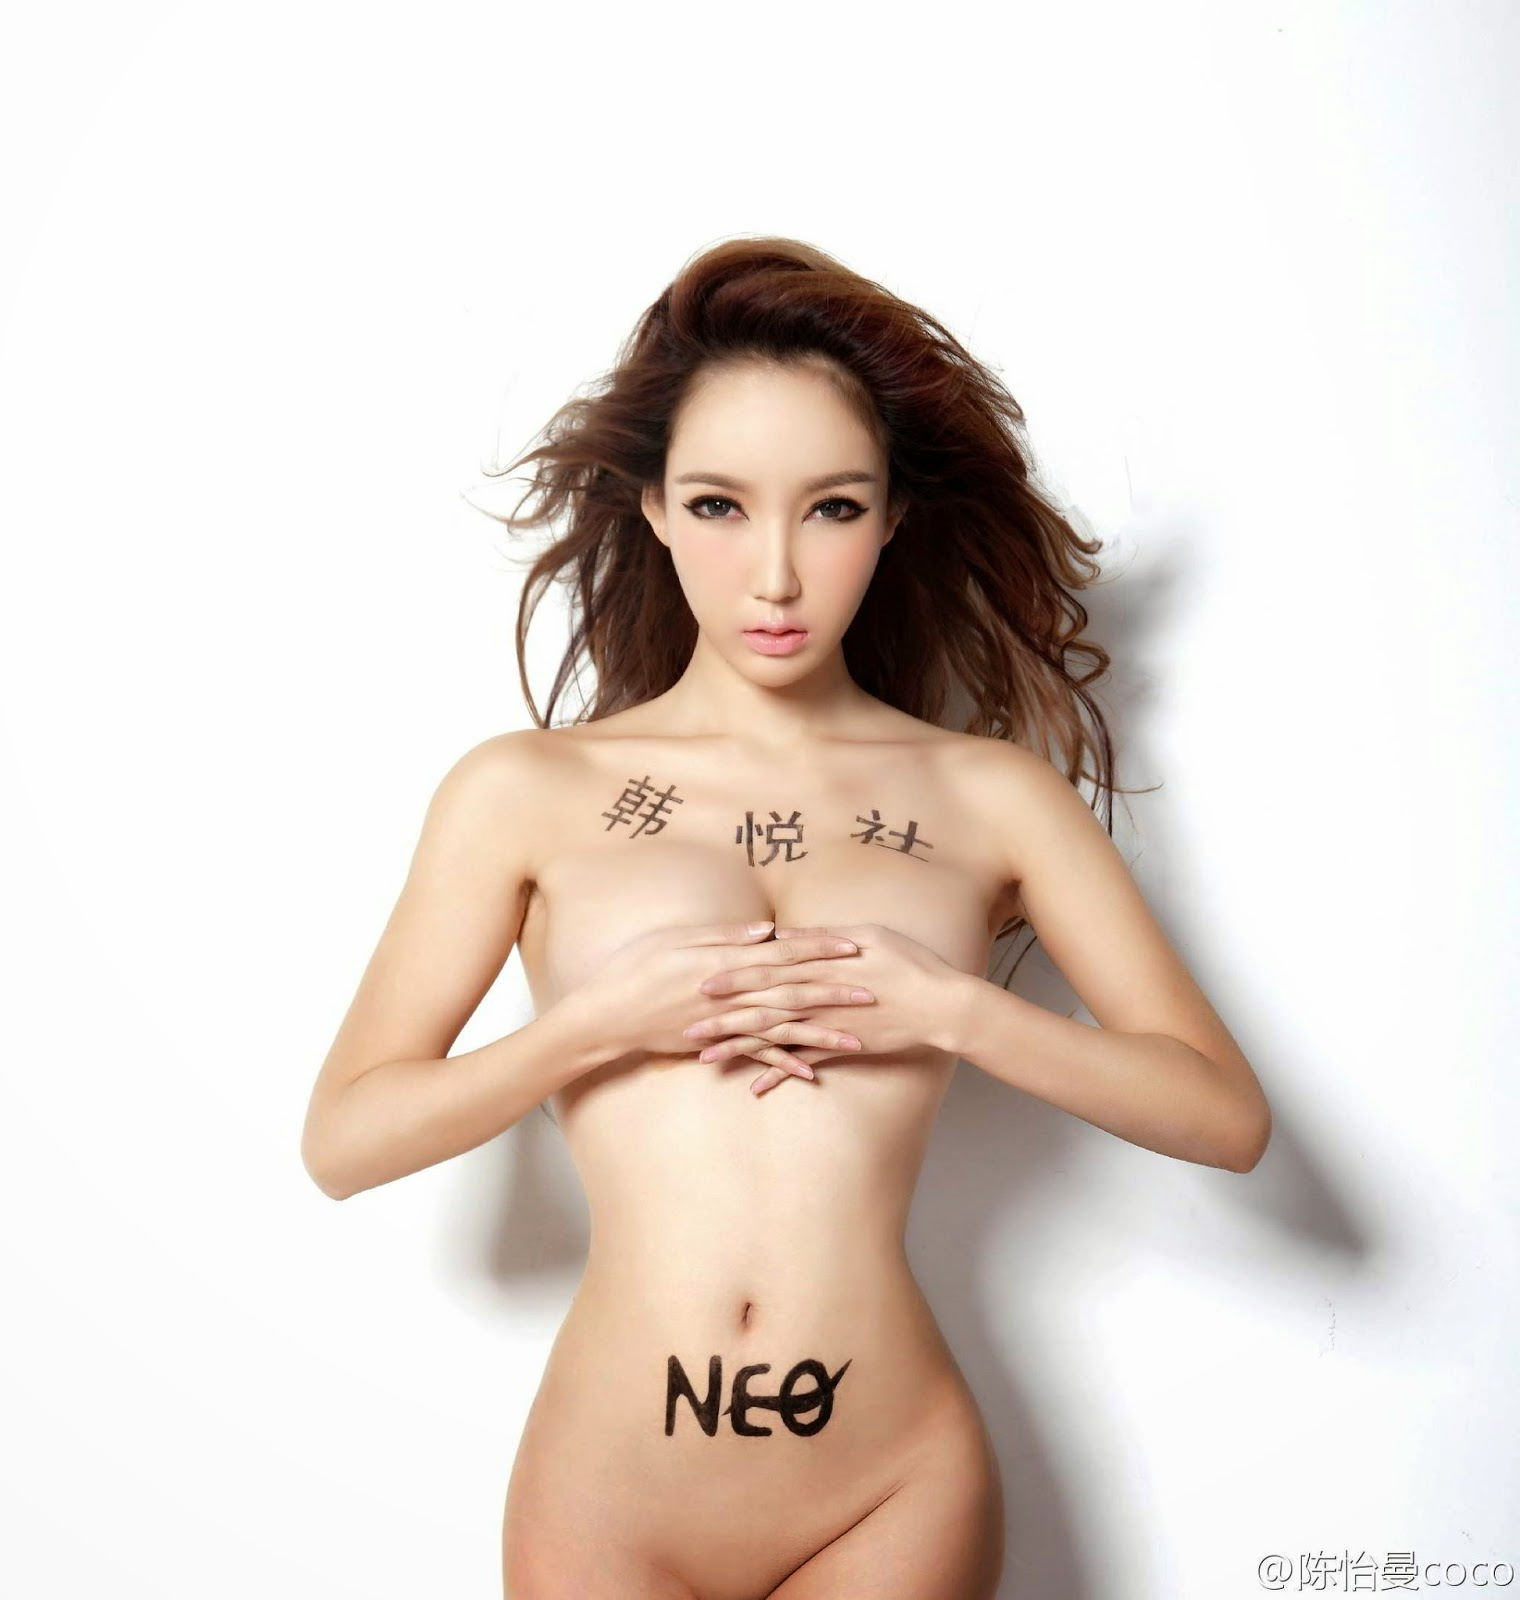 top indonesian dating sites